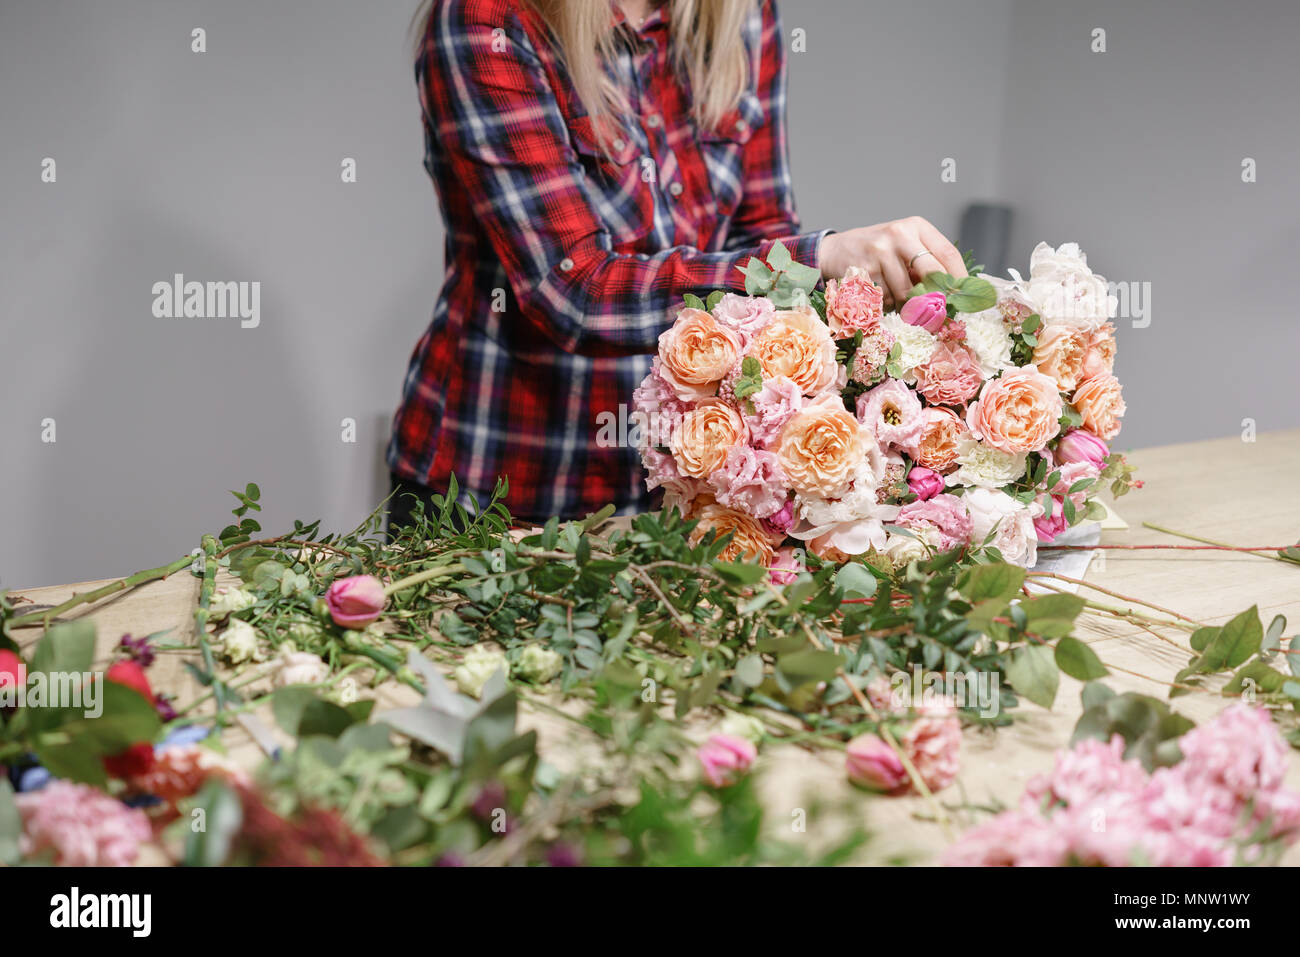 Female florist. Floral workshop - woman making a beautiful flower composition a bouquet. Floristry concept - Stock Image